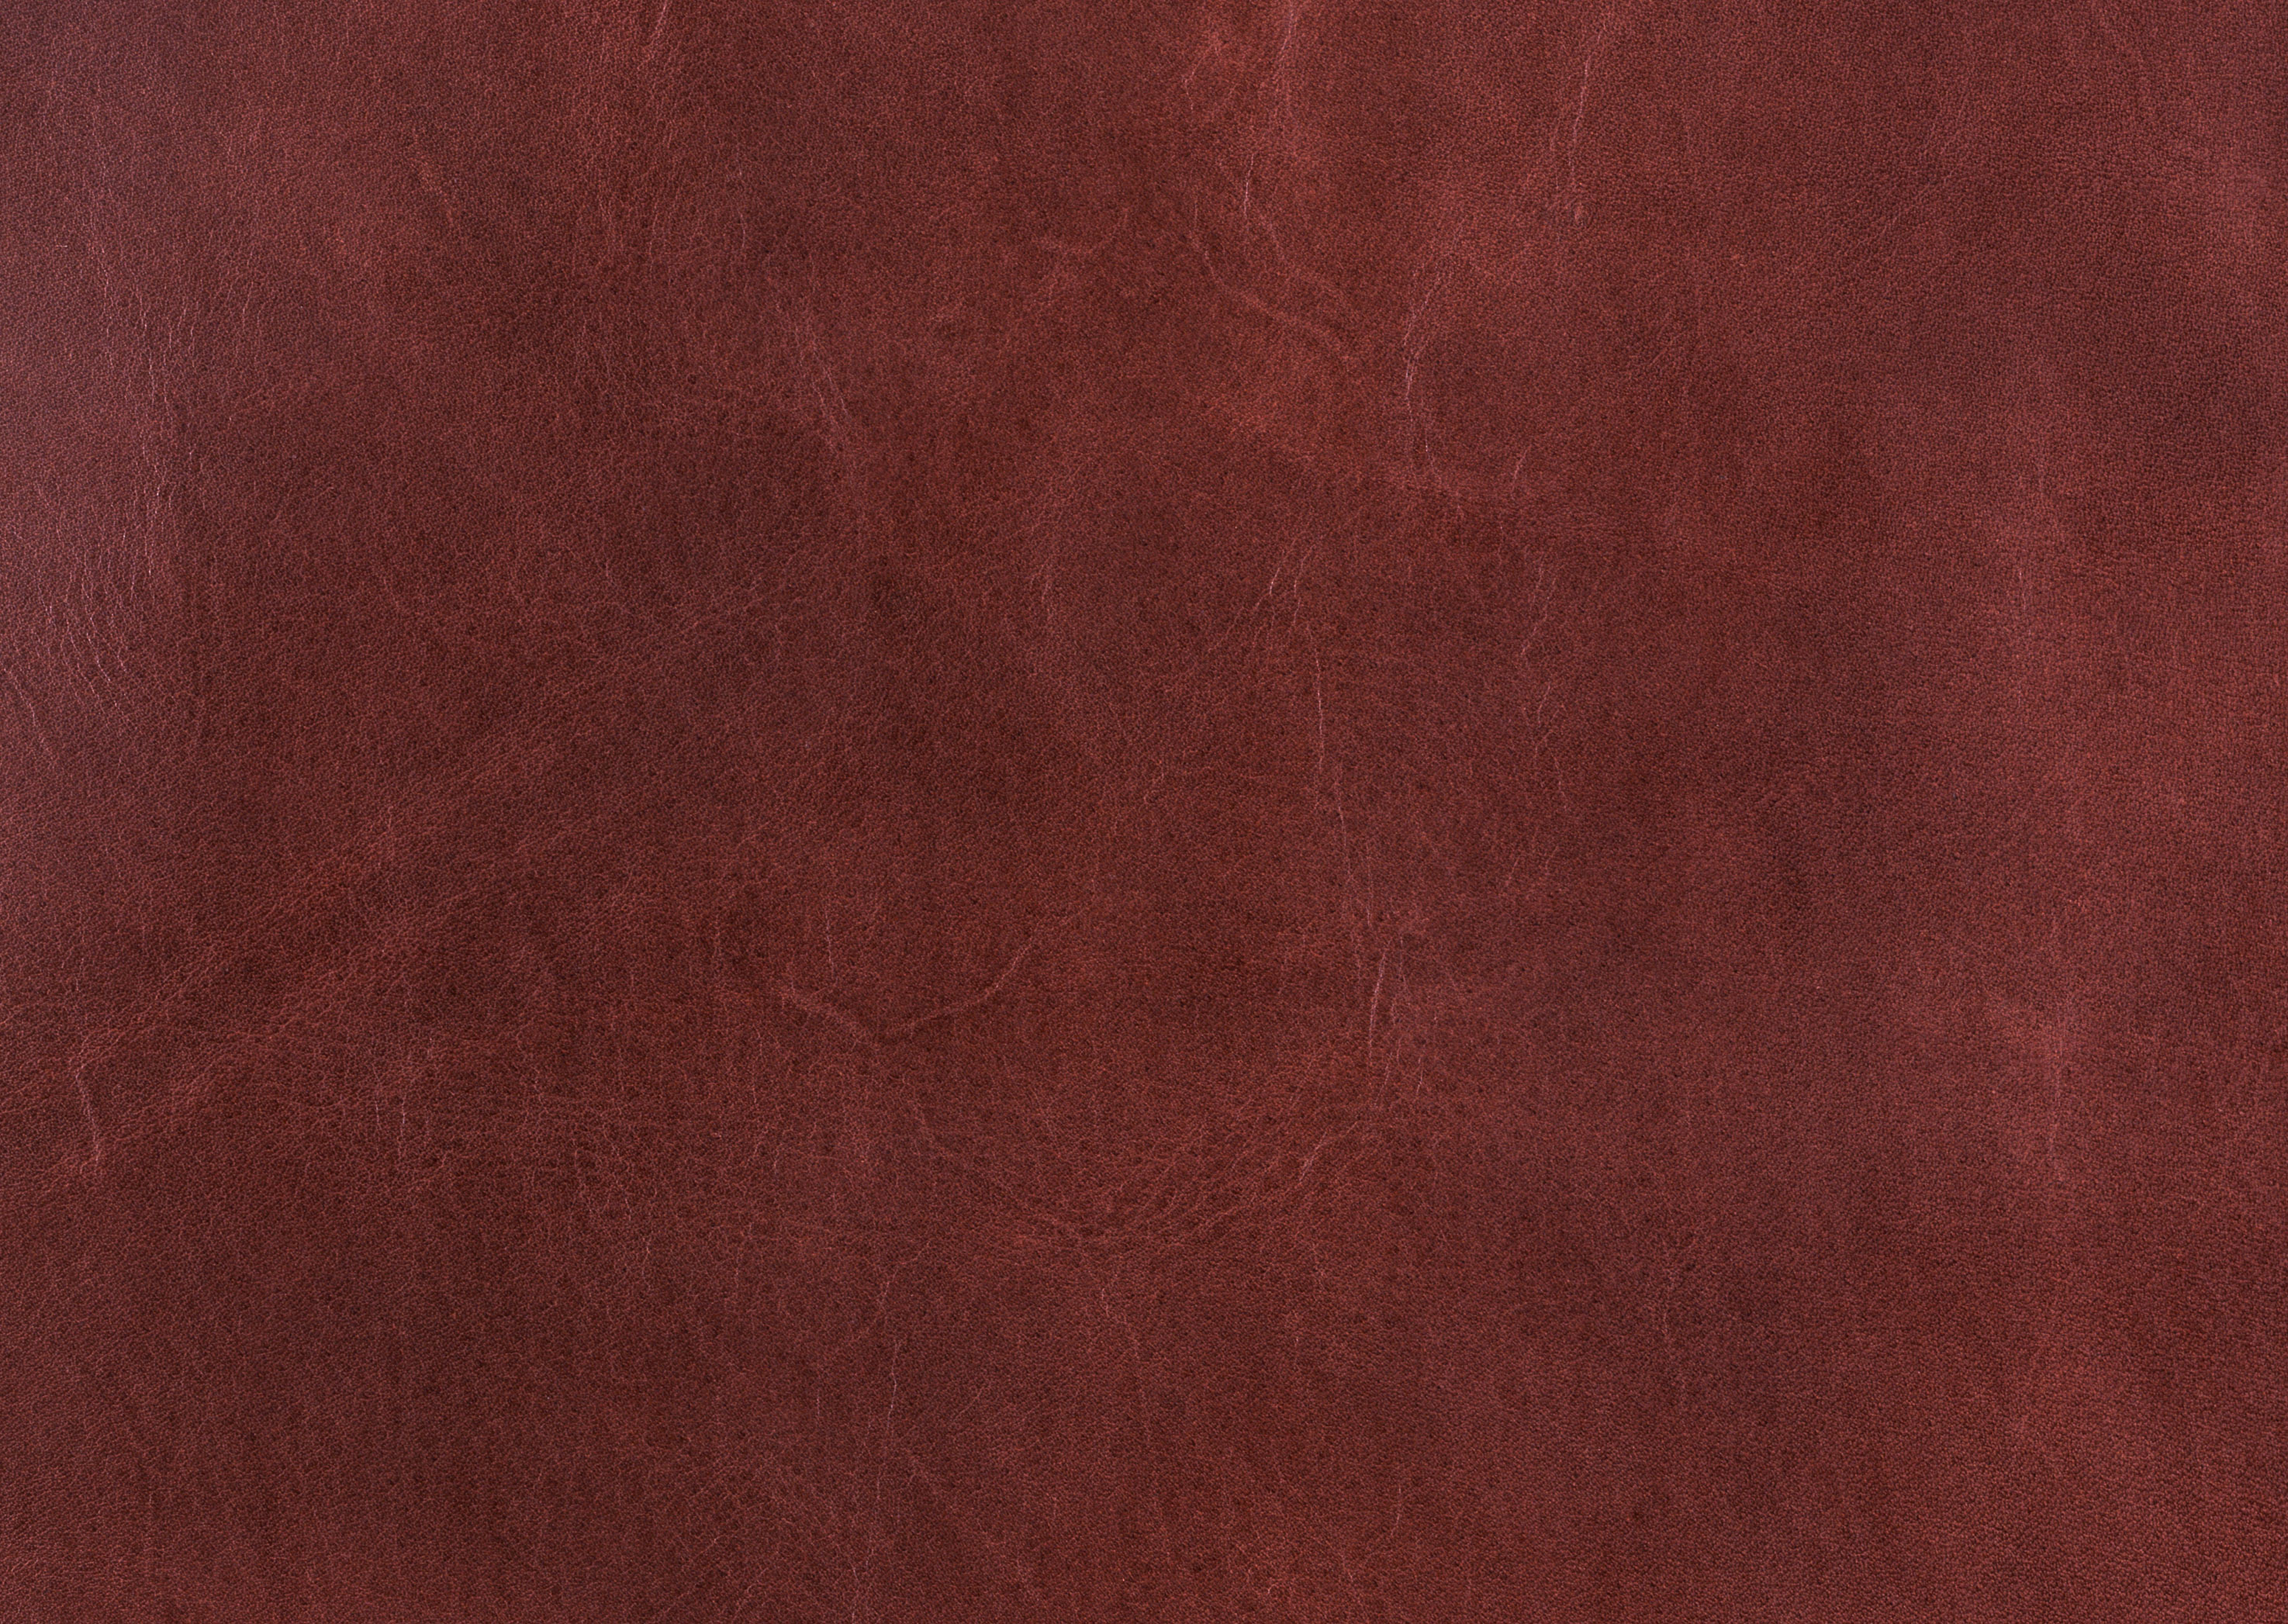 Leather big texures background image, free picture leather download